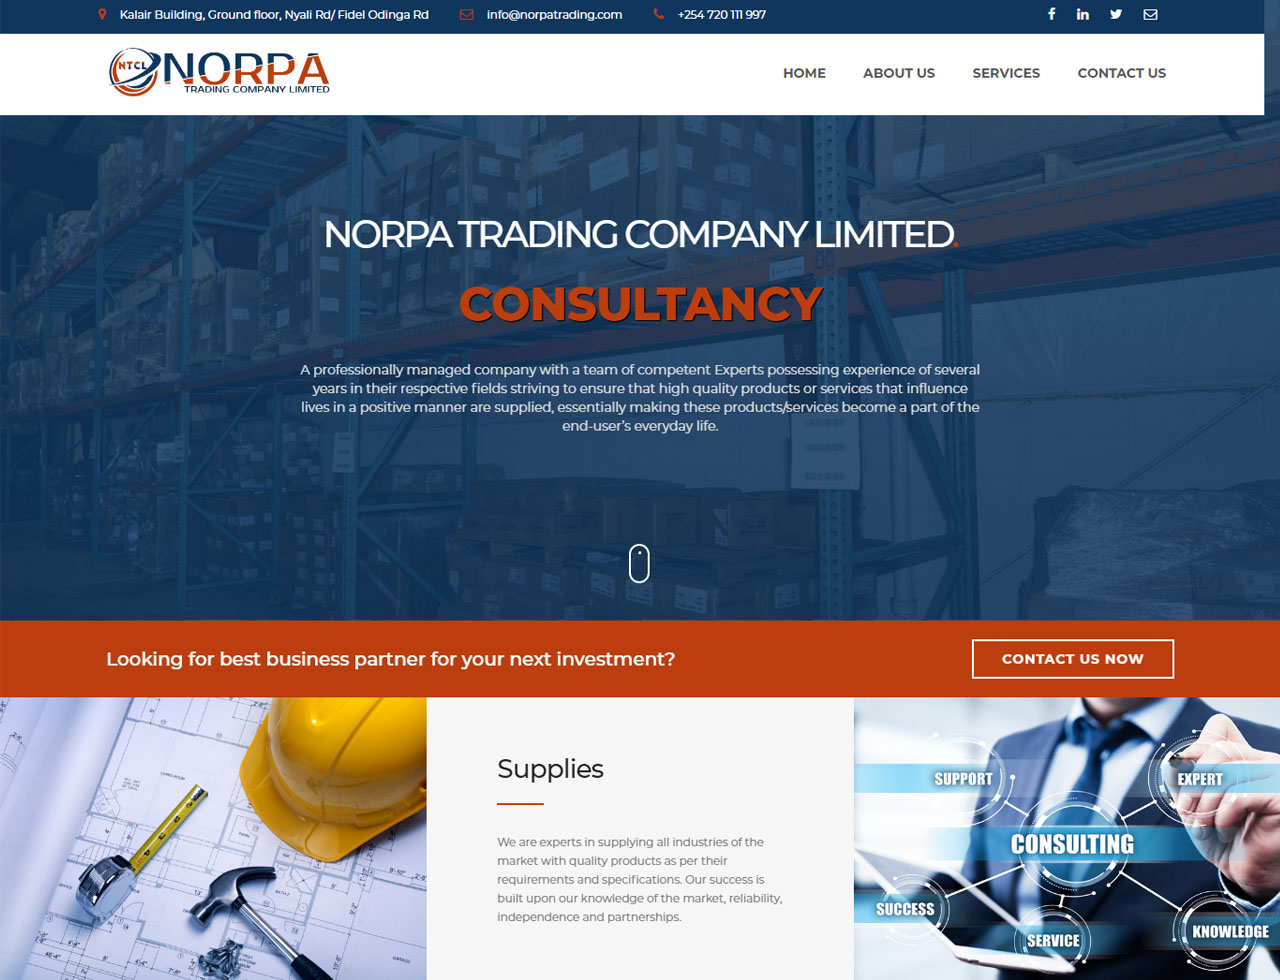 NORPA Trading Limited website design by Inspimate Enterprises